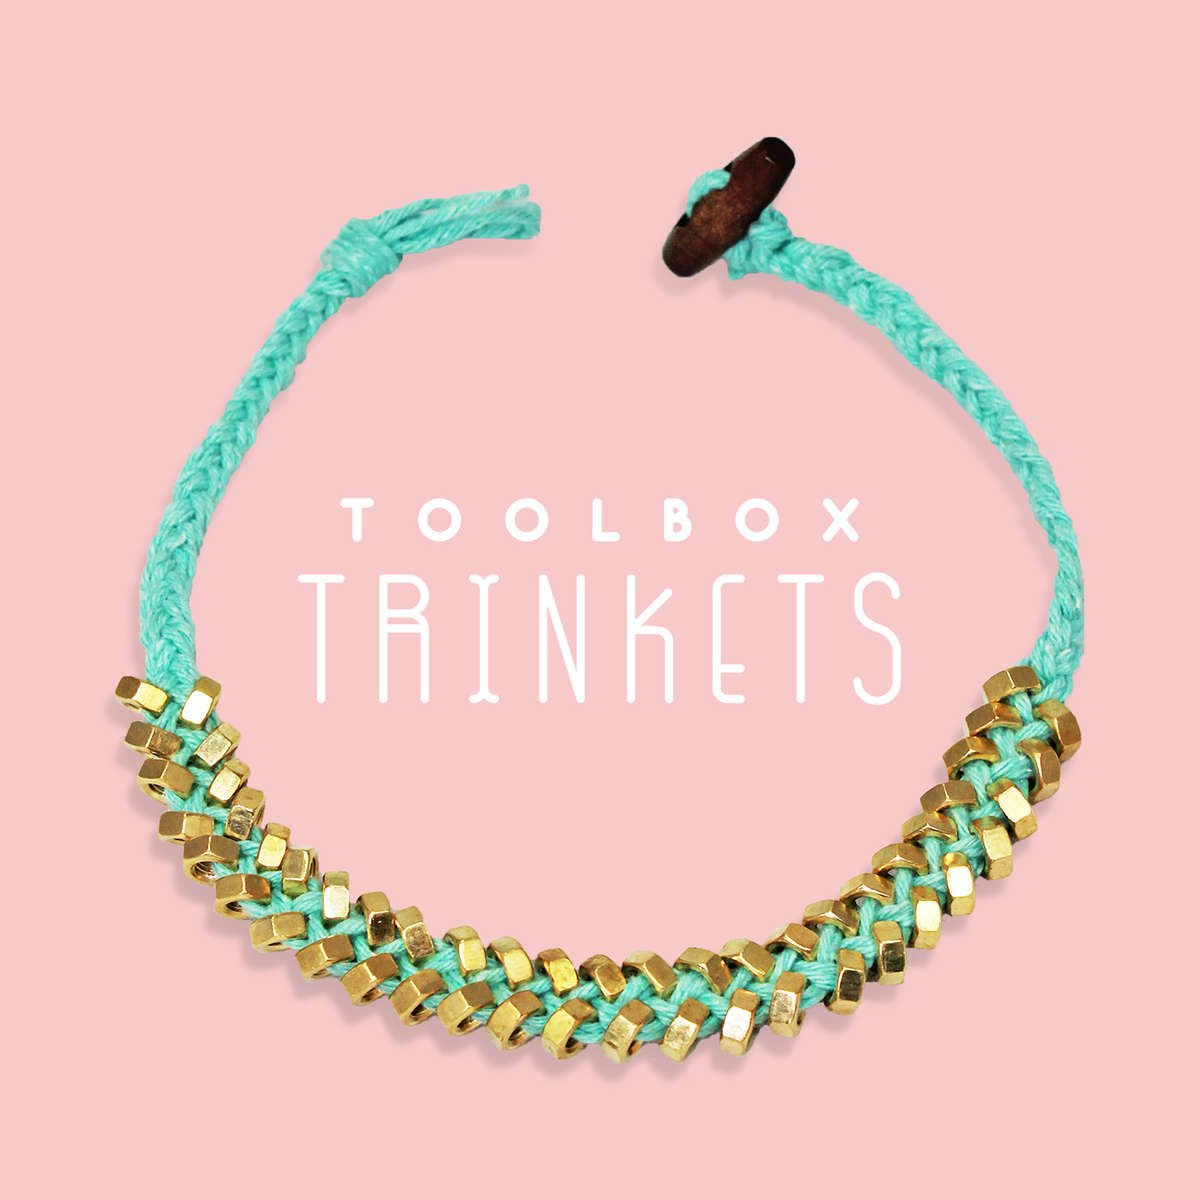 Toolbox Trinkets Sarah-Lily Necklace in sky blue